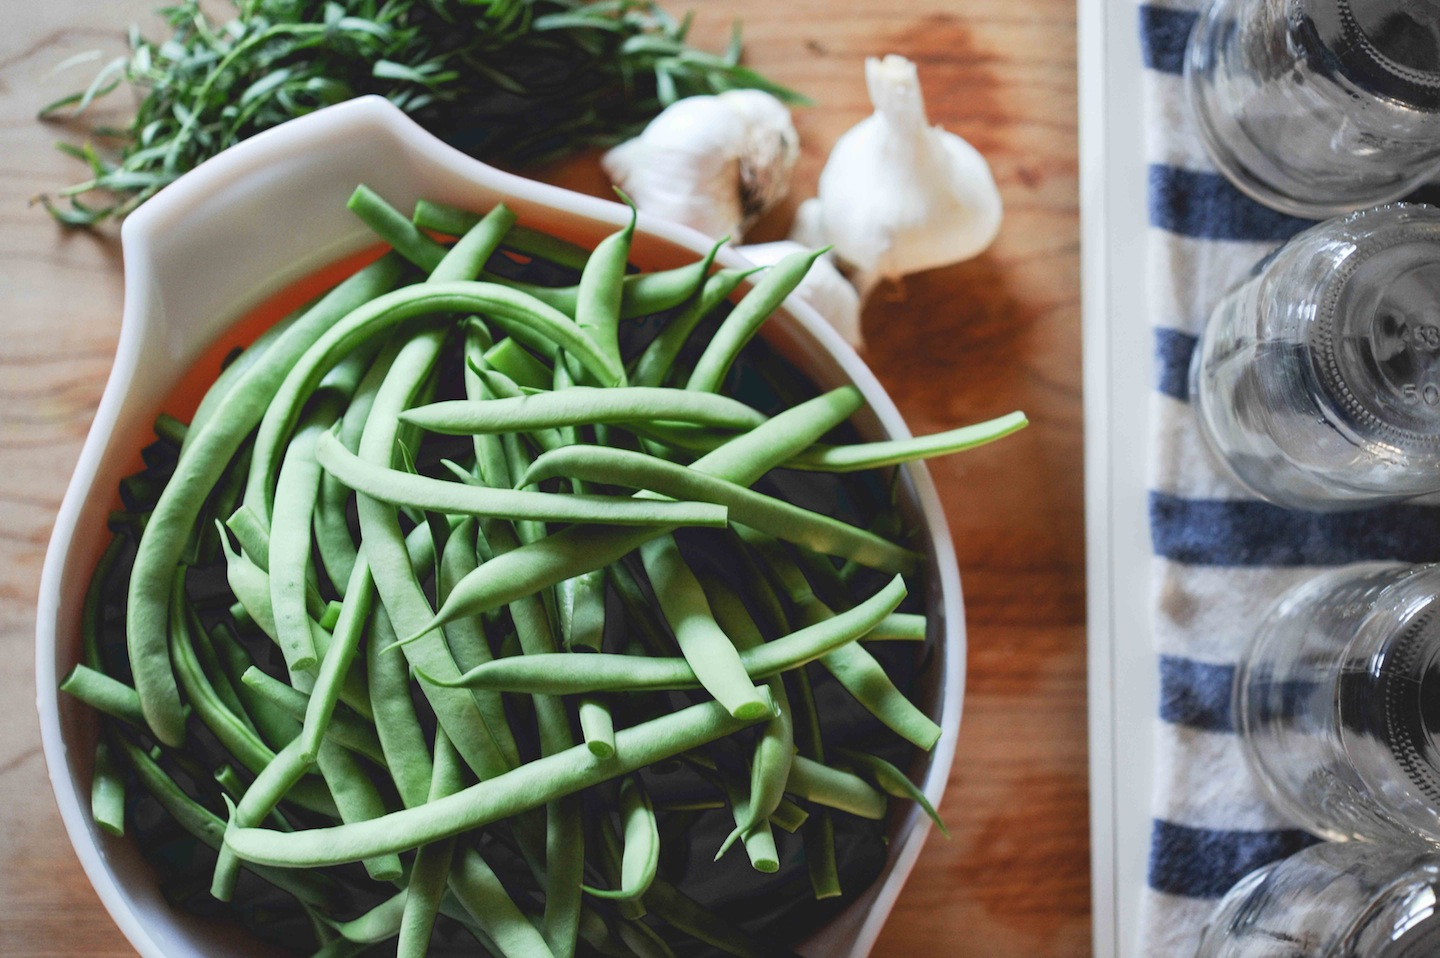 pickling green beans.jpg